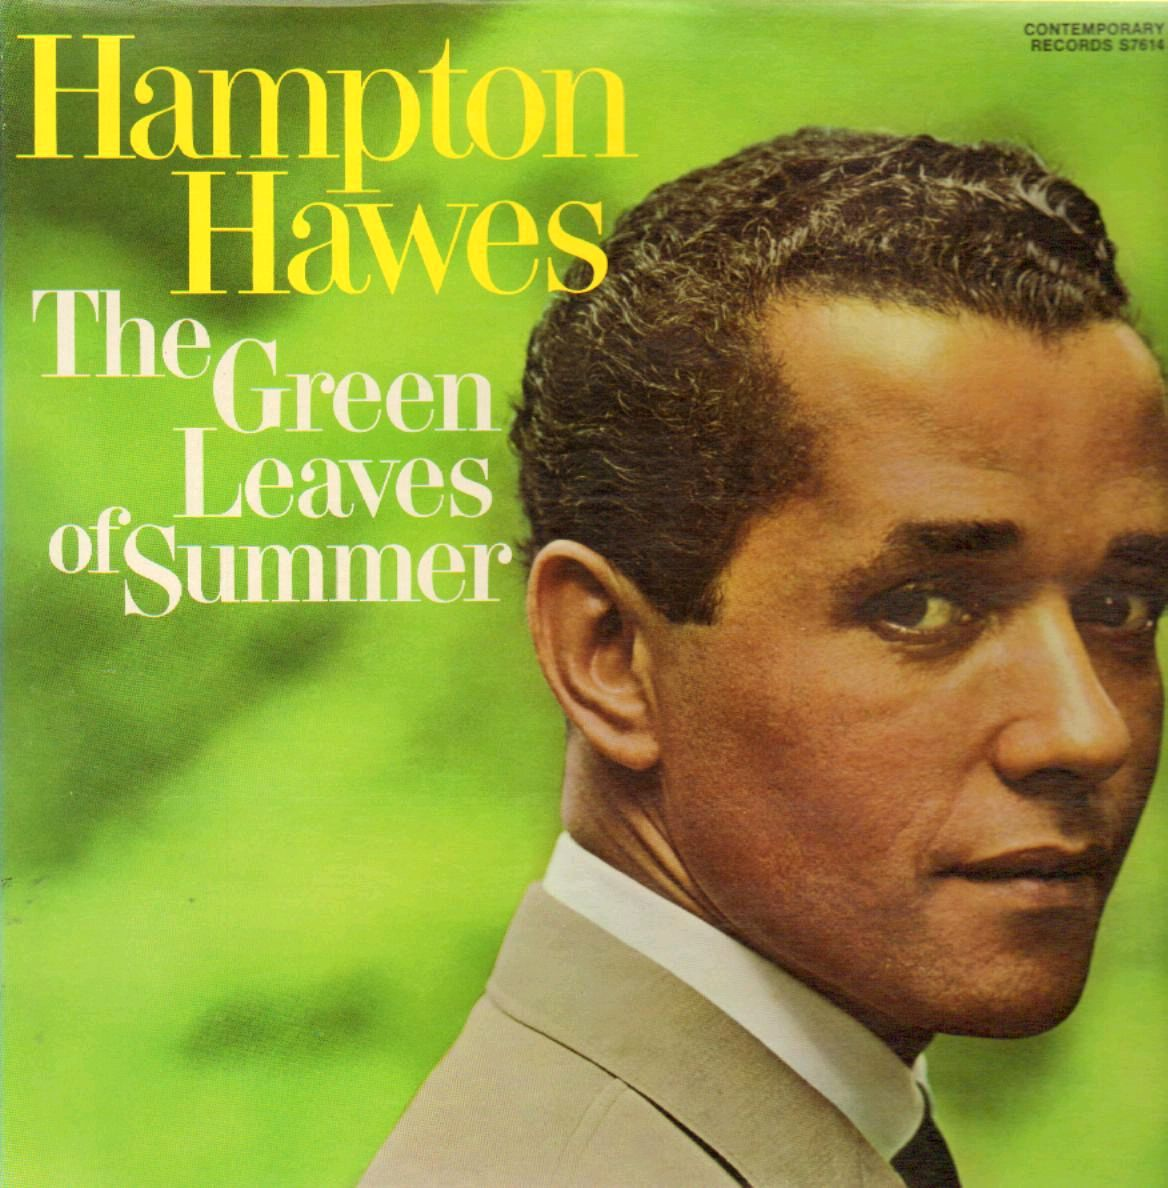 hampton_hawes-the_green_leaves_of_summer